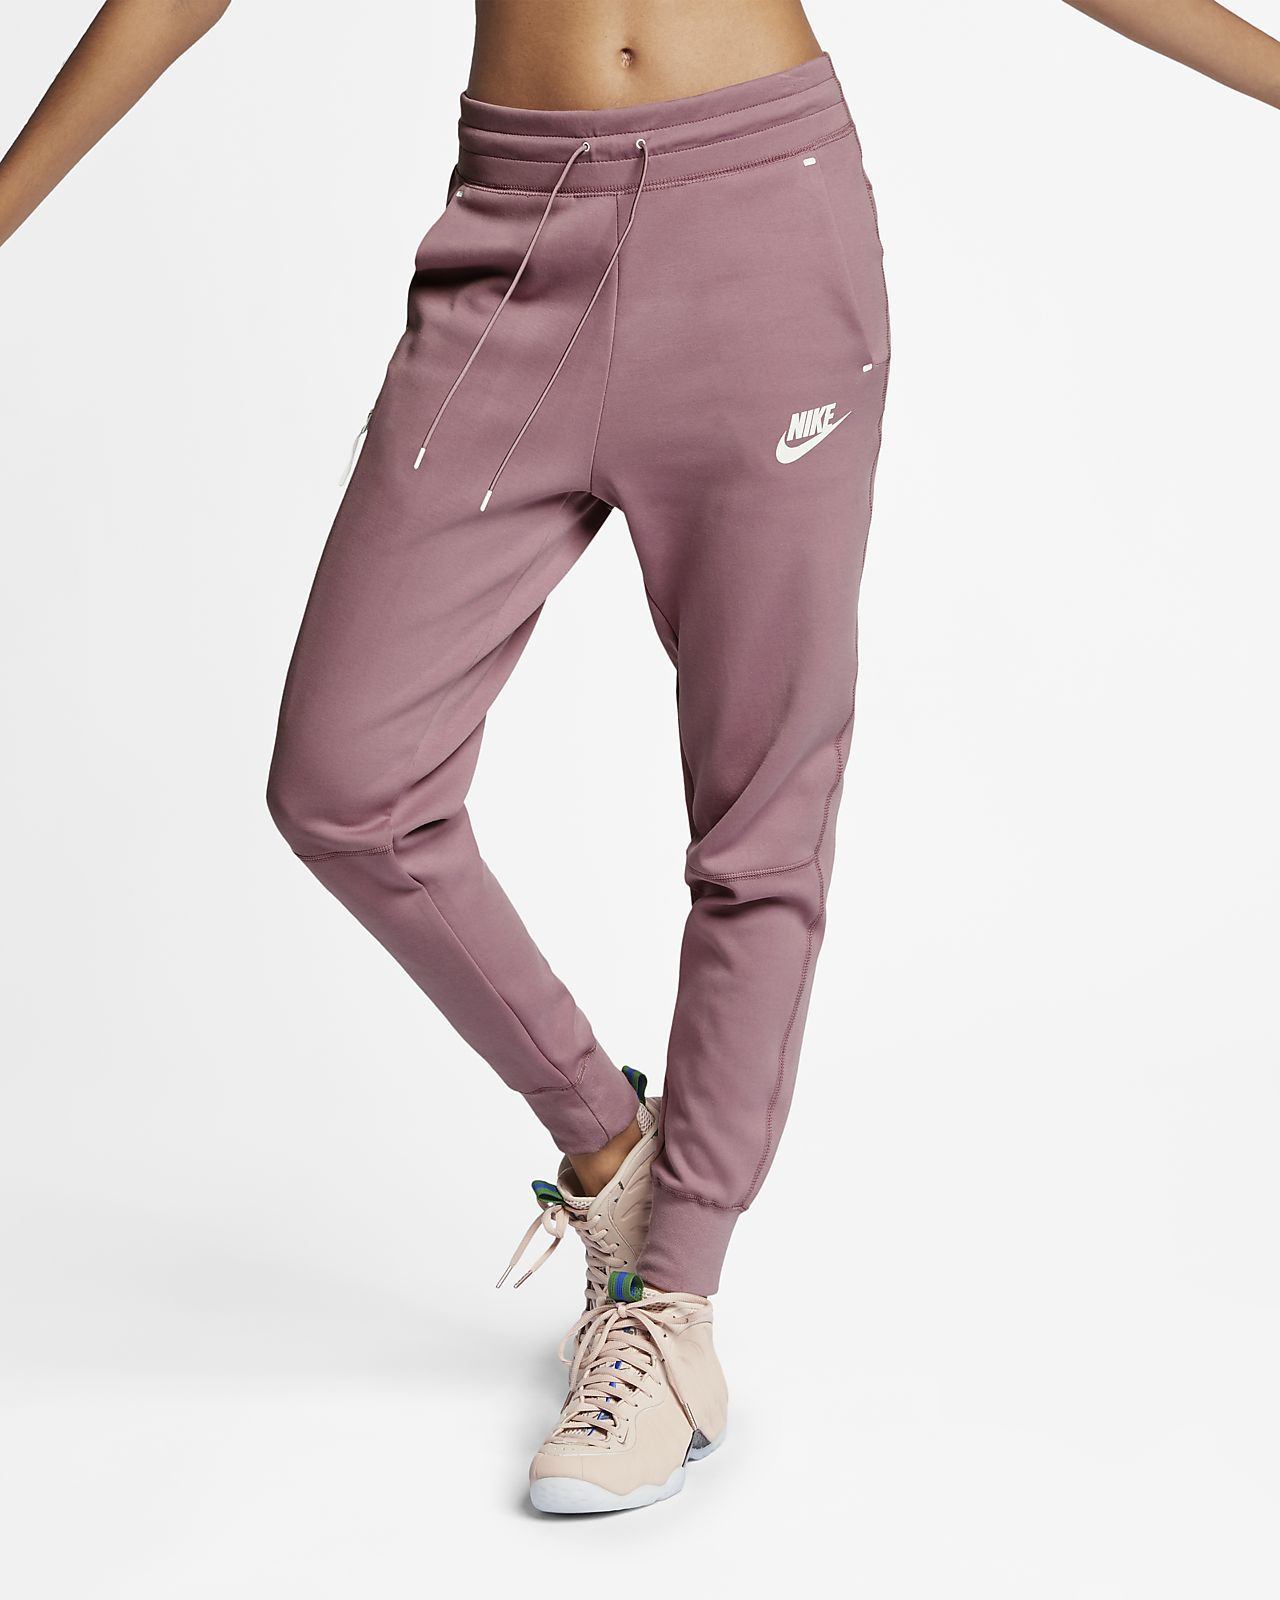 475248b2e31ba Nike Women's Pants Sportswear Tech Fleece in 2019 | Wardrobe | Tech ...